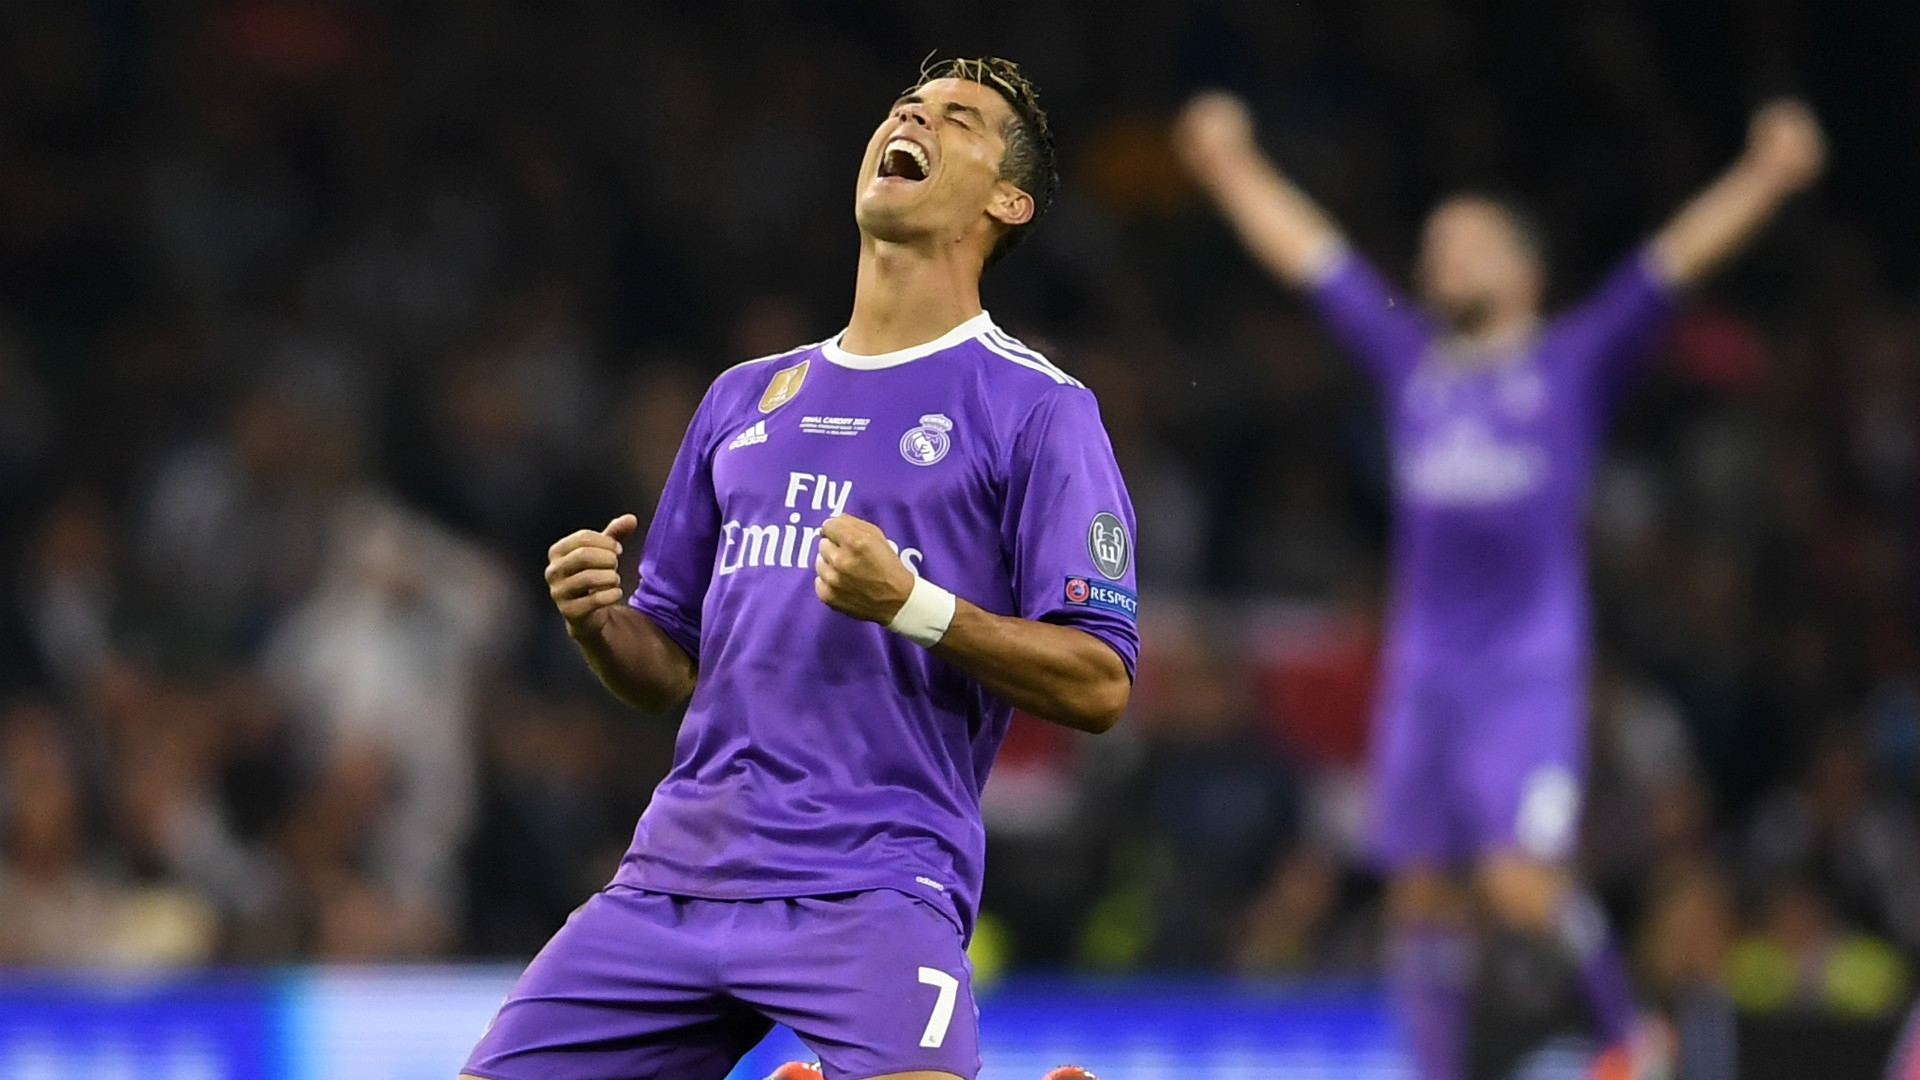 Ronaldo scored twice in Real's victory over Juventus